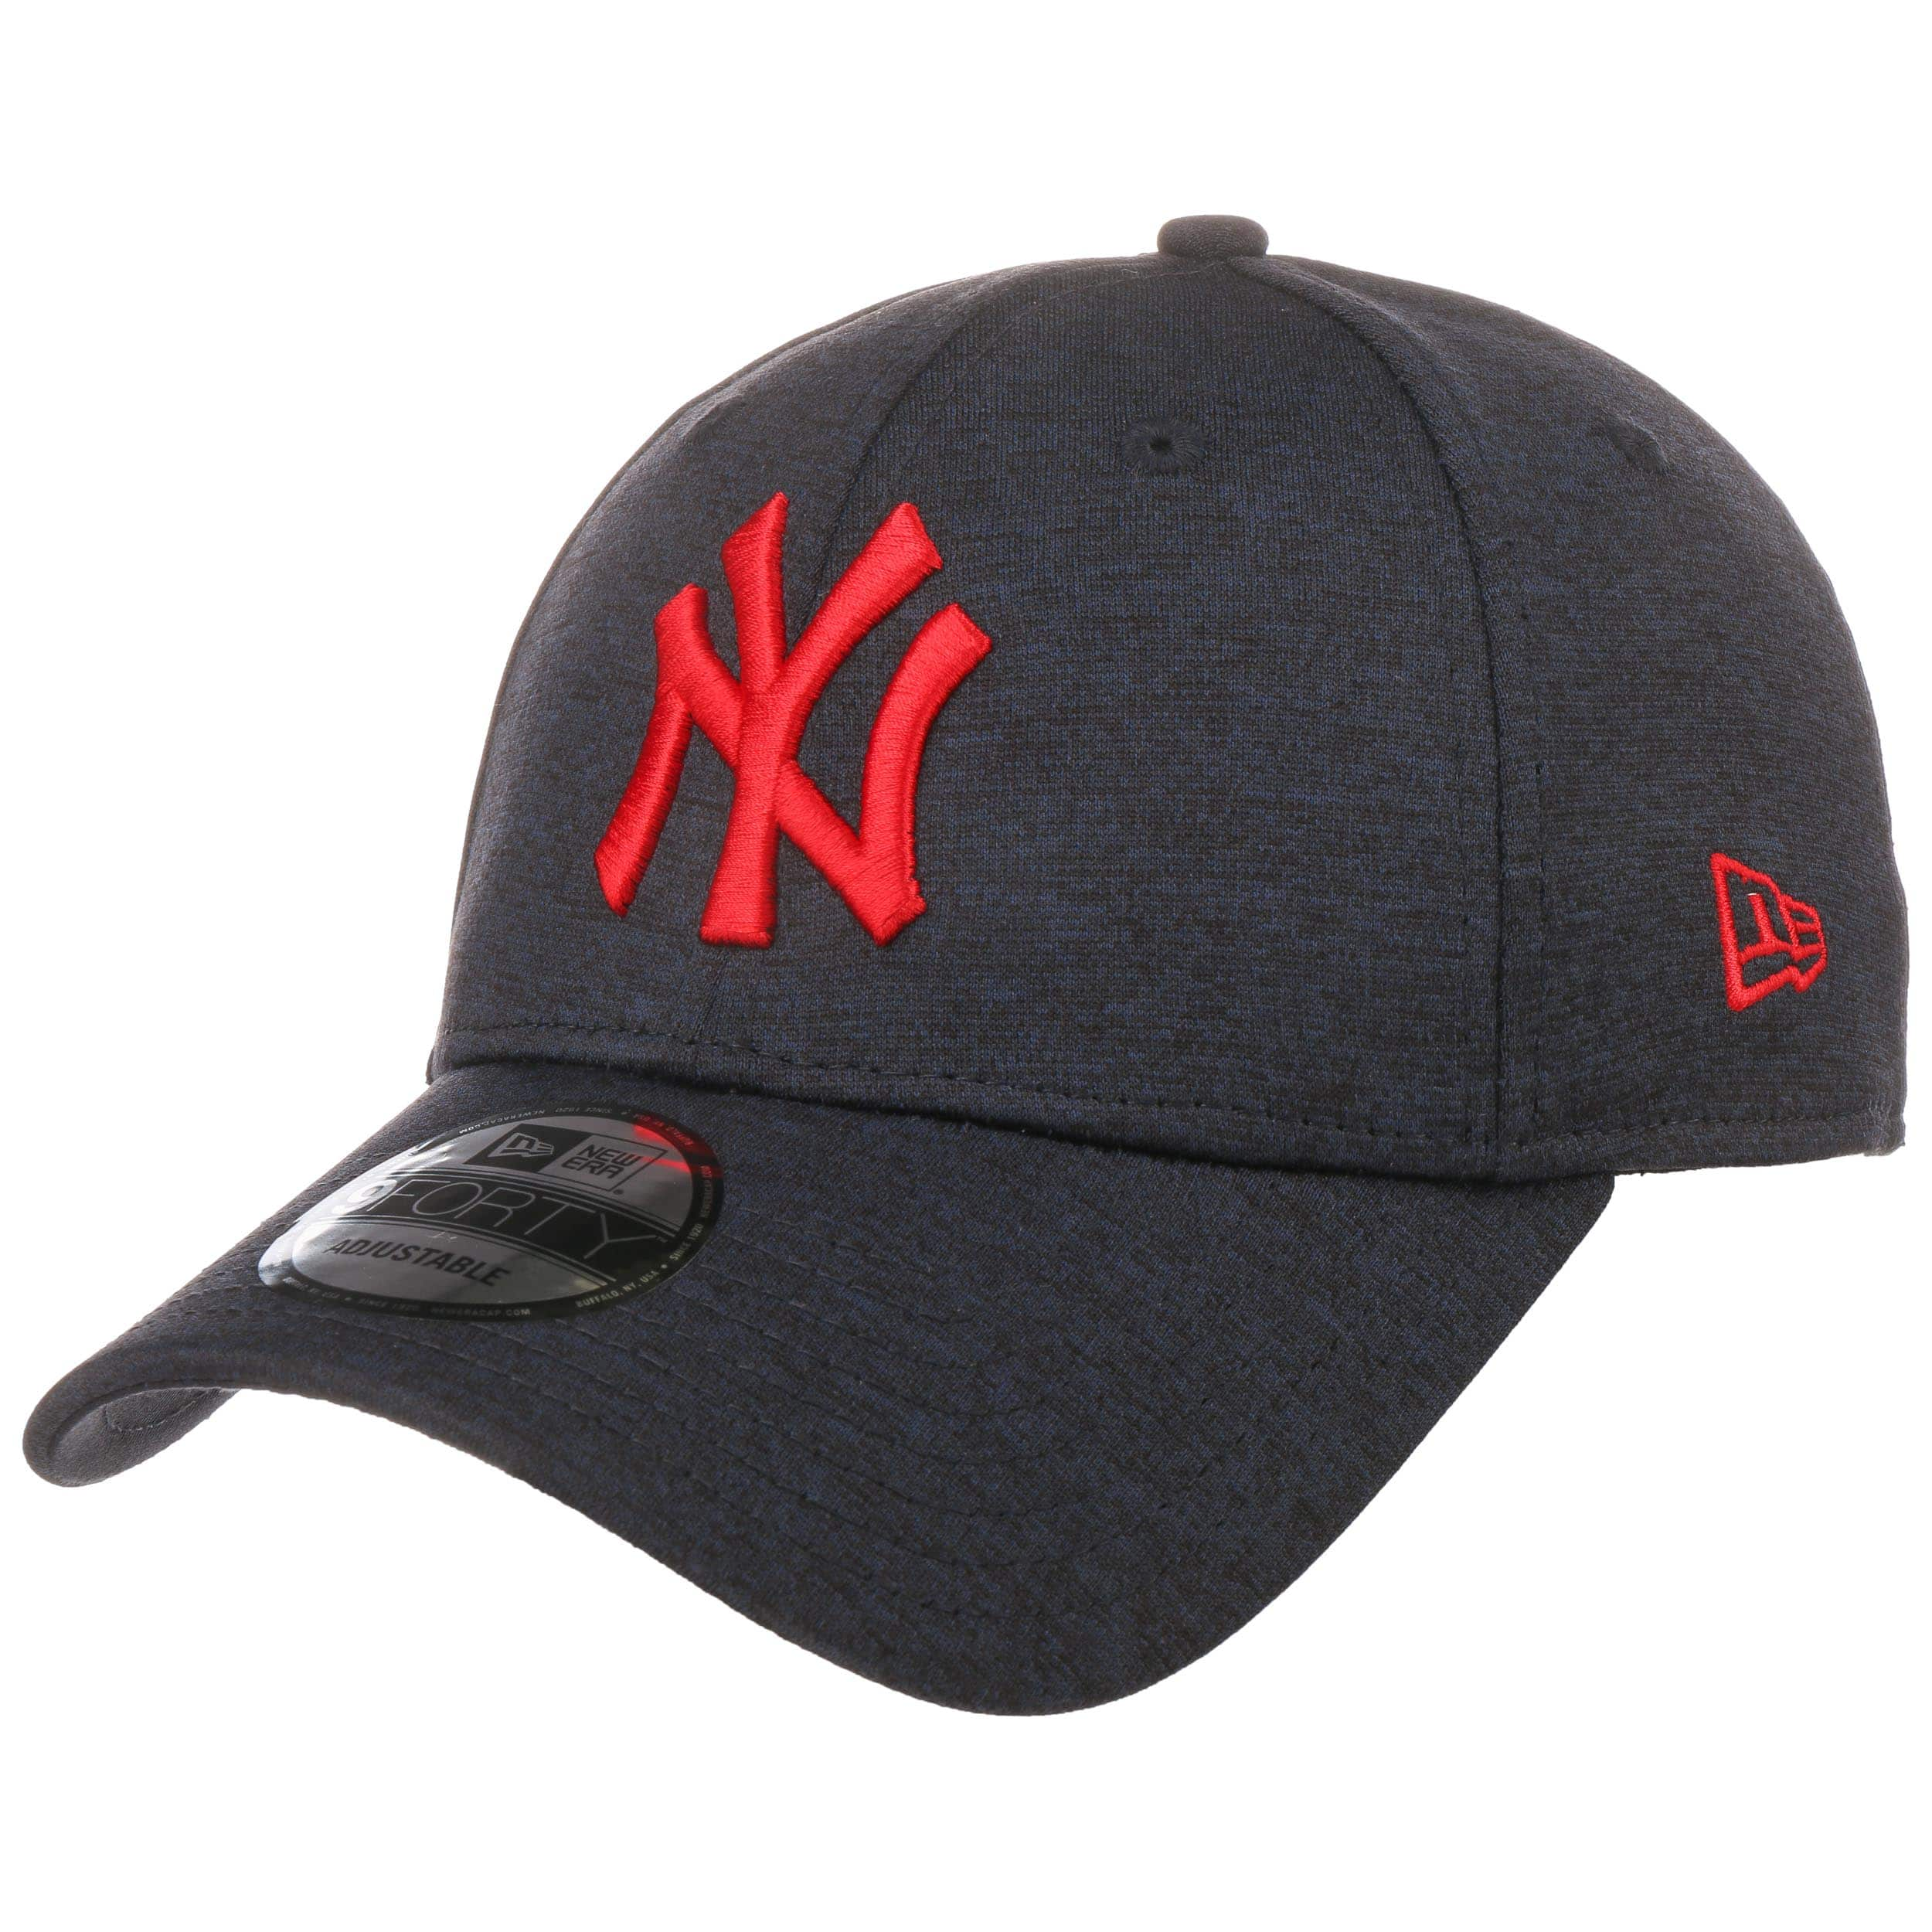 a664299d0 Casquette 9Forty Shadow Tech Yankees by New Era